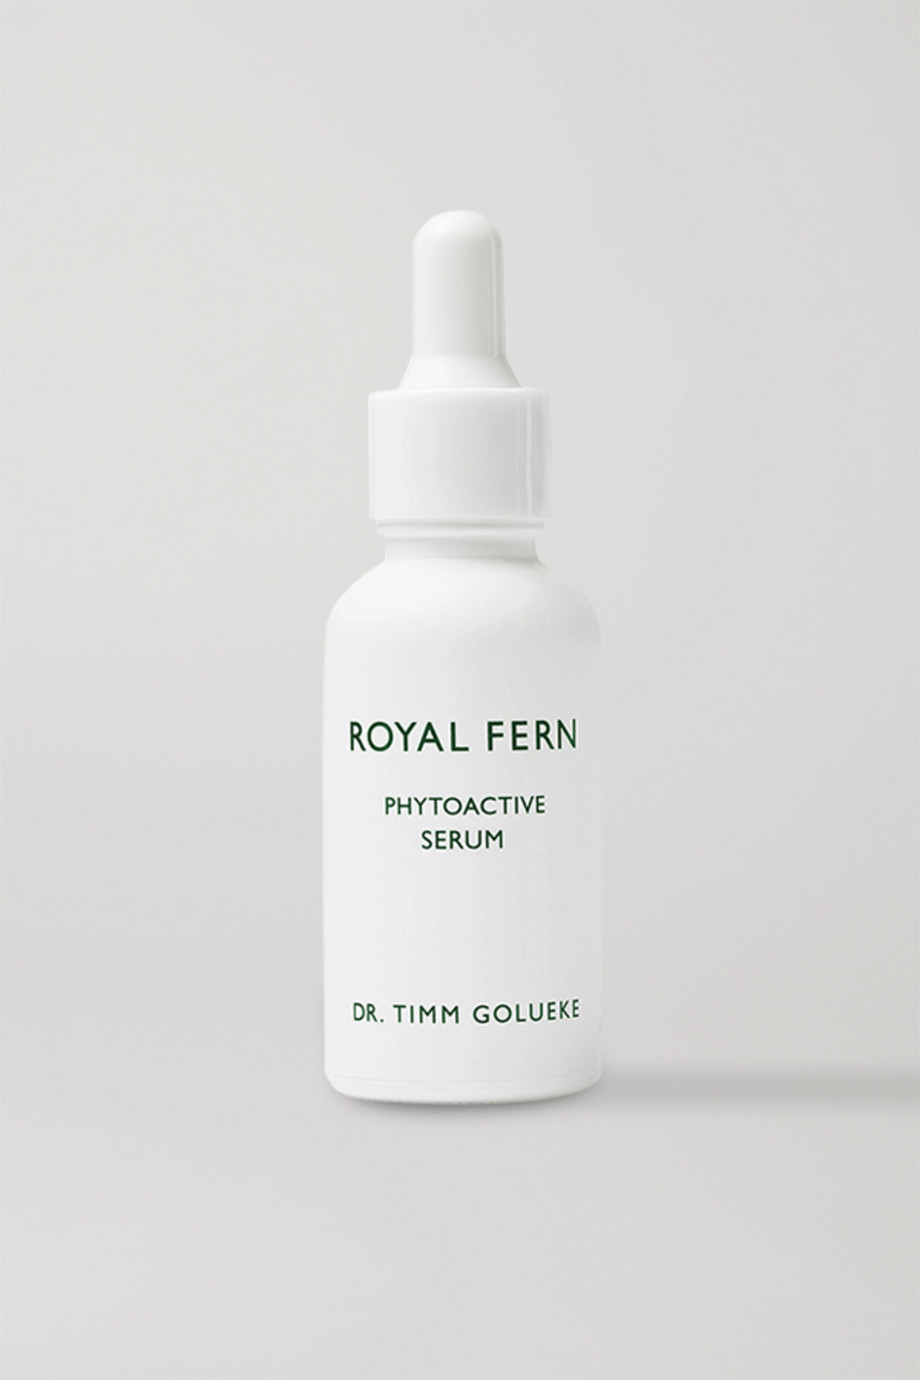 ROYAL FERN Phytoactive Serum, 30ml